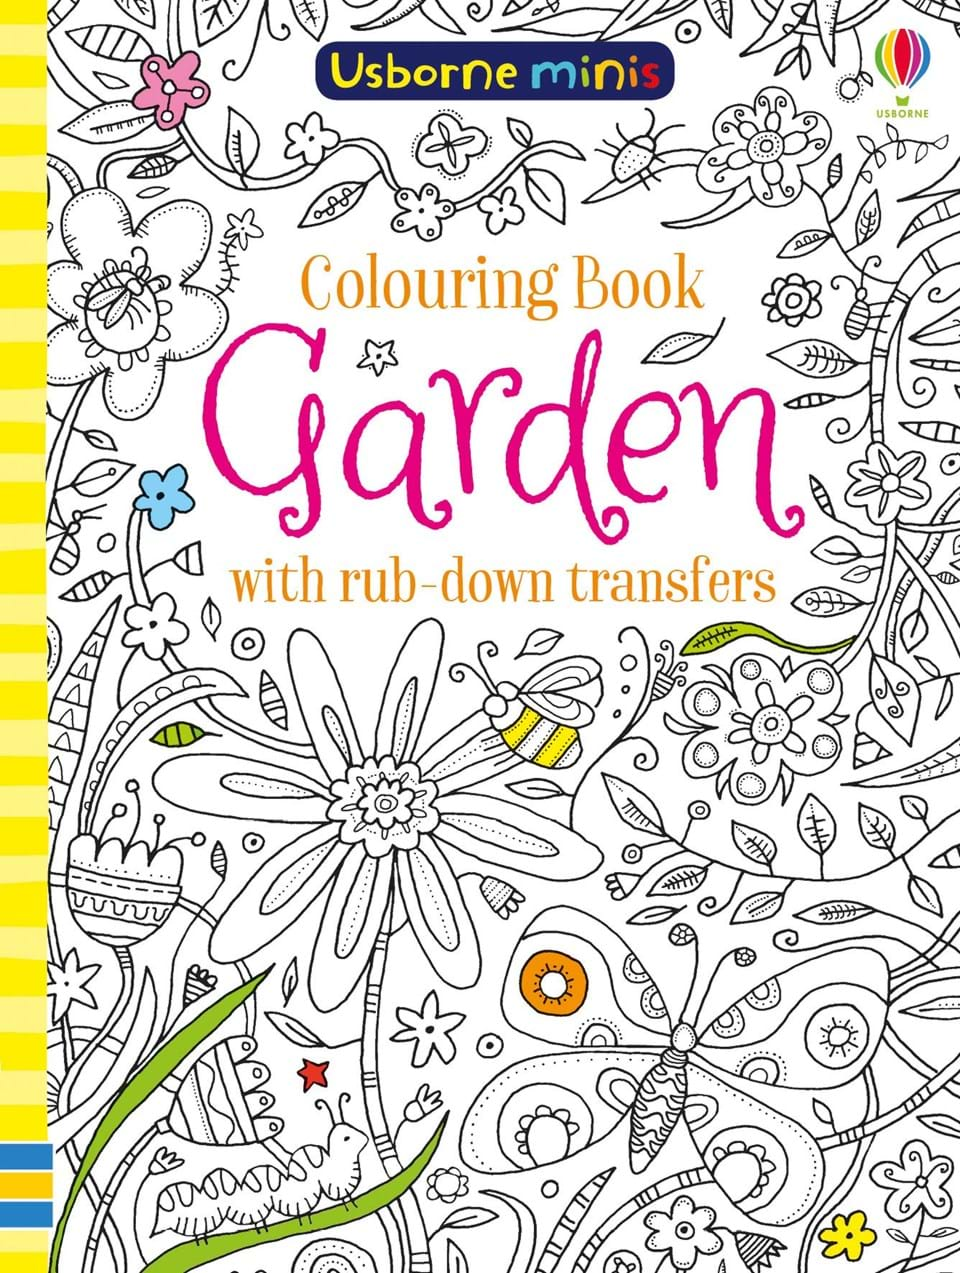 Colouring book garden with rub-down transfers celtic patterns to colour